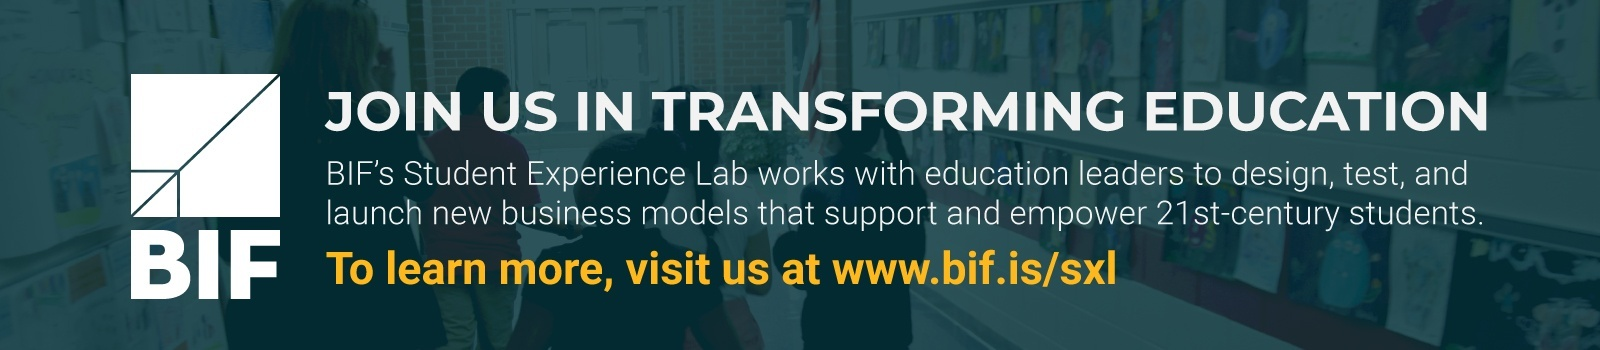 Join Us in Transforming Education Together